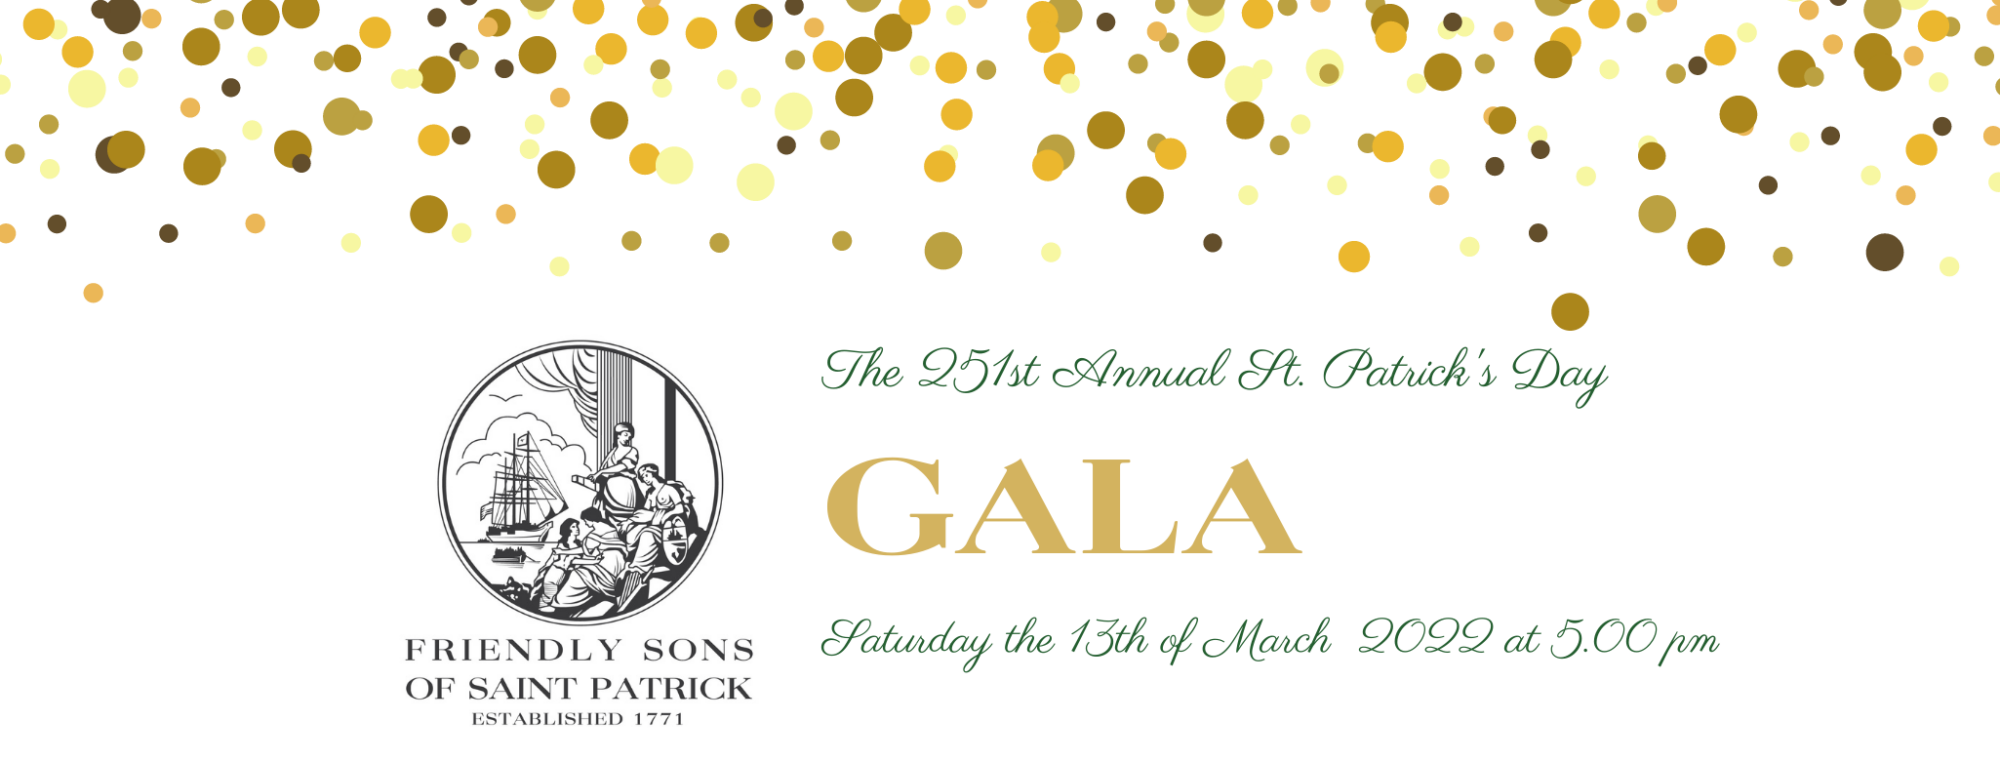 251st Annual St. Patrick's Day Gala